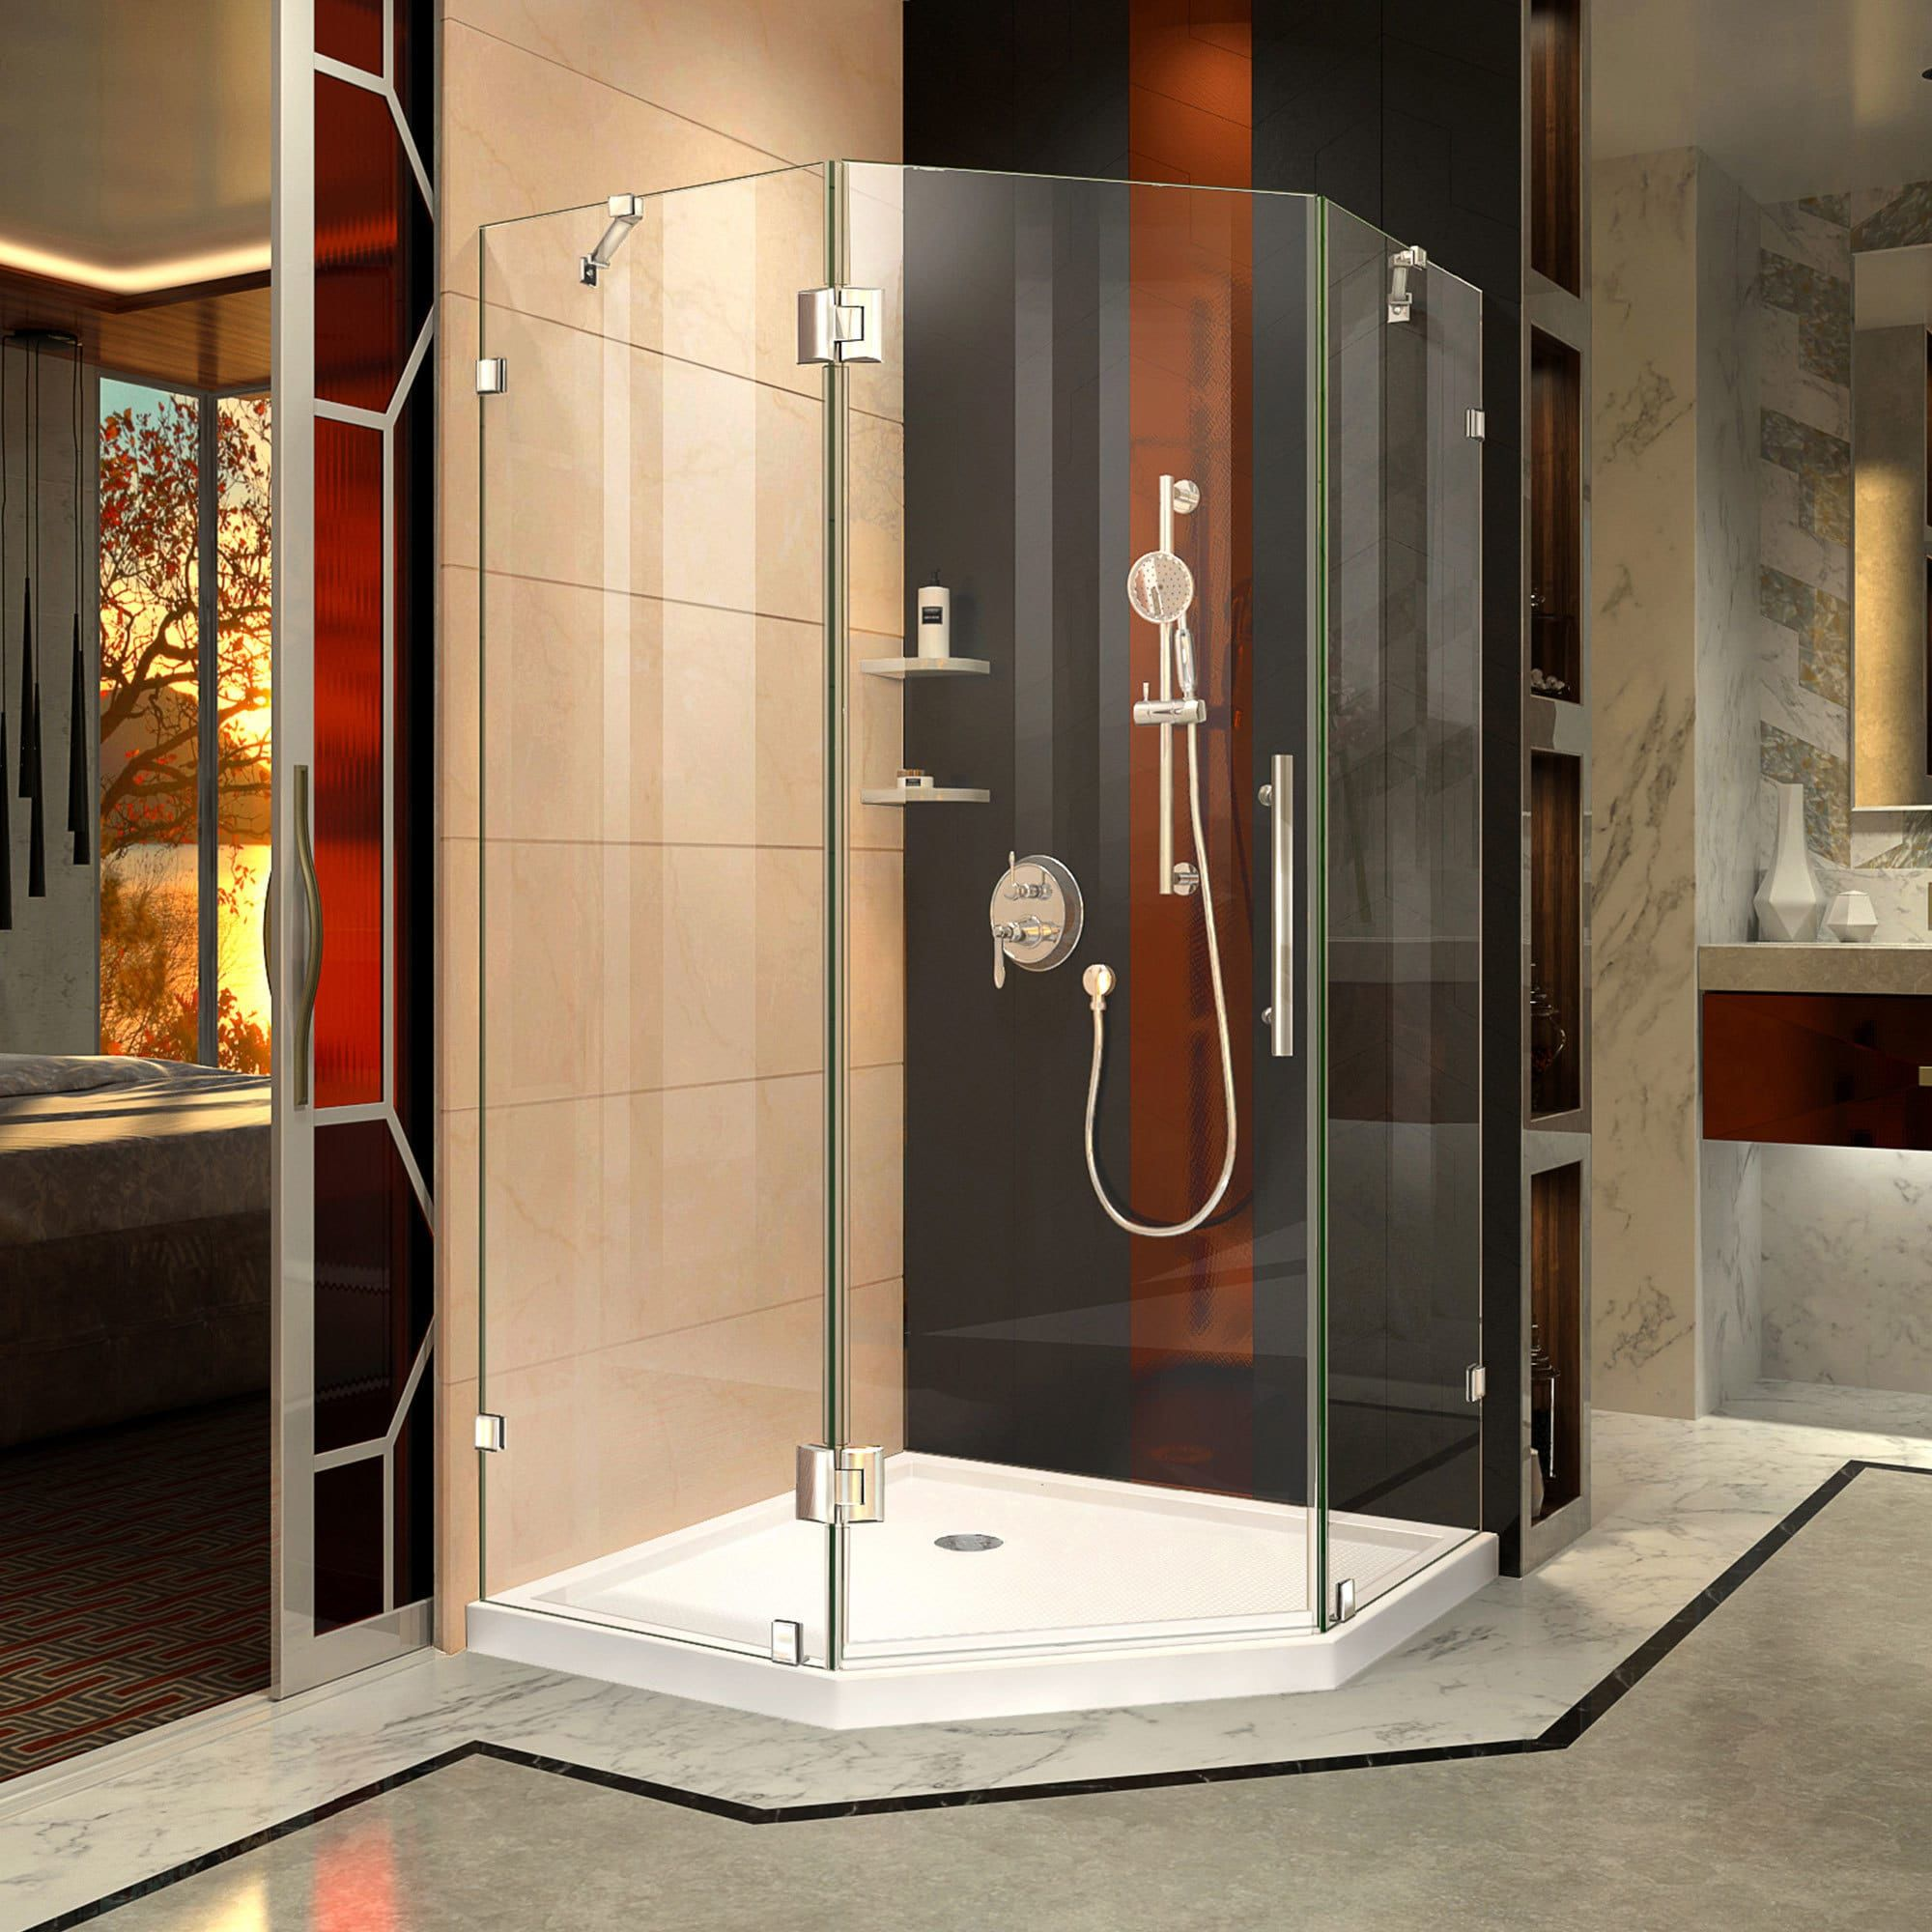 Dreamline Prism Lux 38 In X 38 In X 74 3 4 In H Hinged Shower